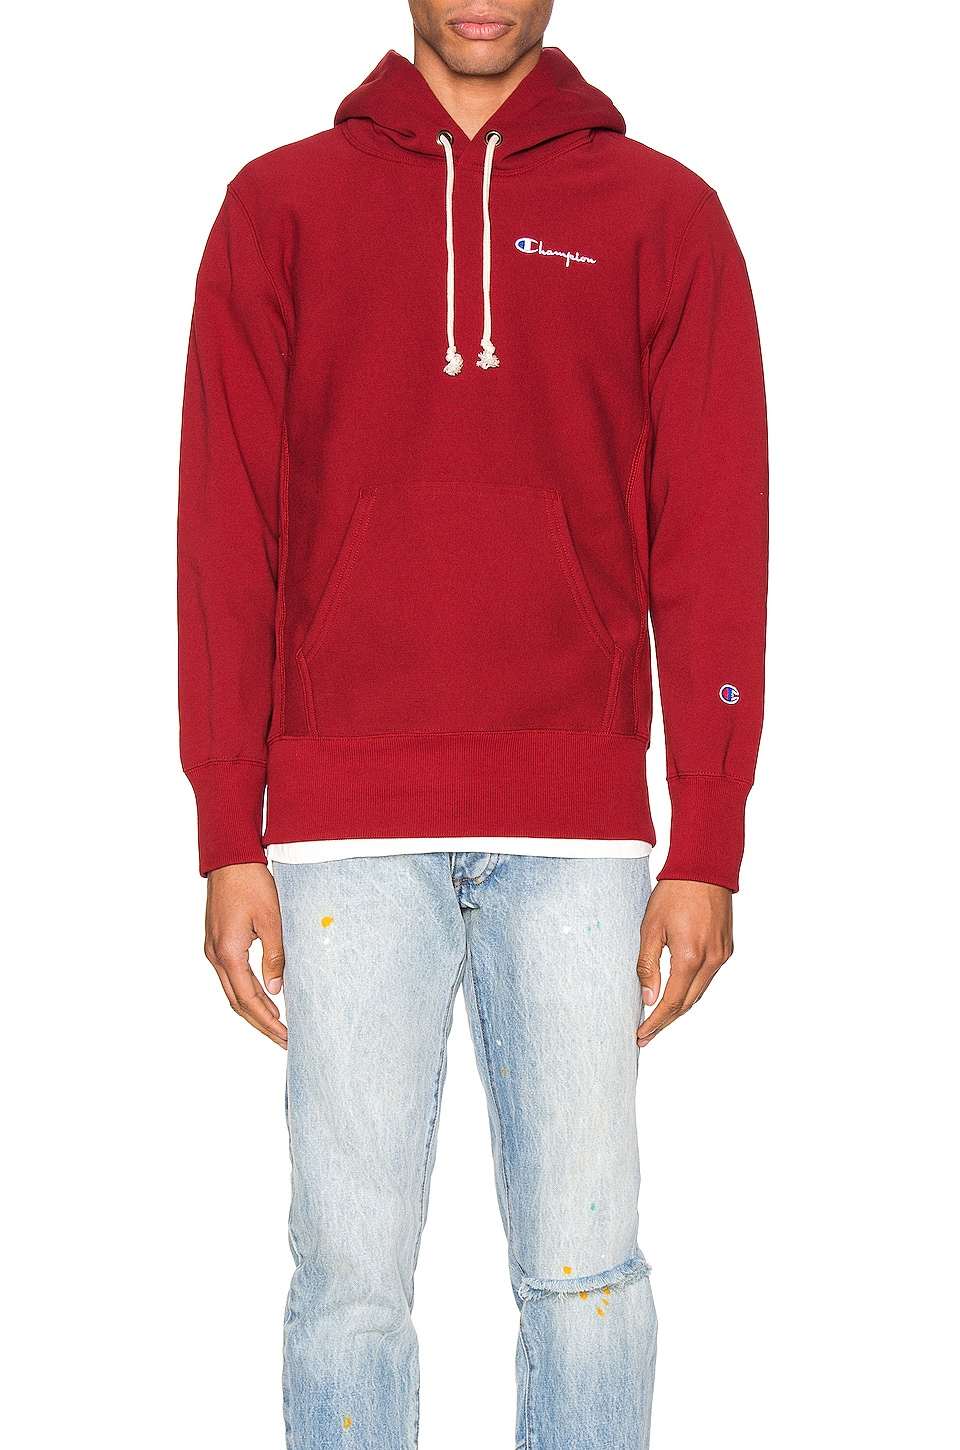 Champion Reverse Weave Small Script Hooded Sweatshirt in Scarlet